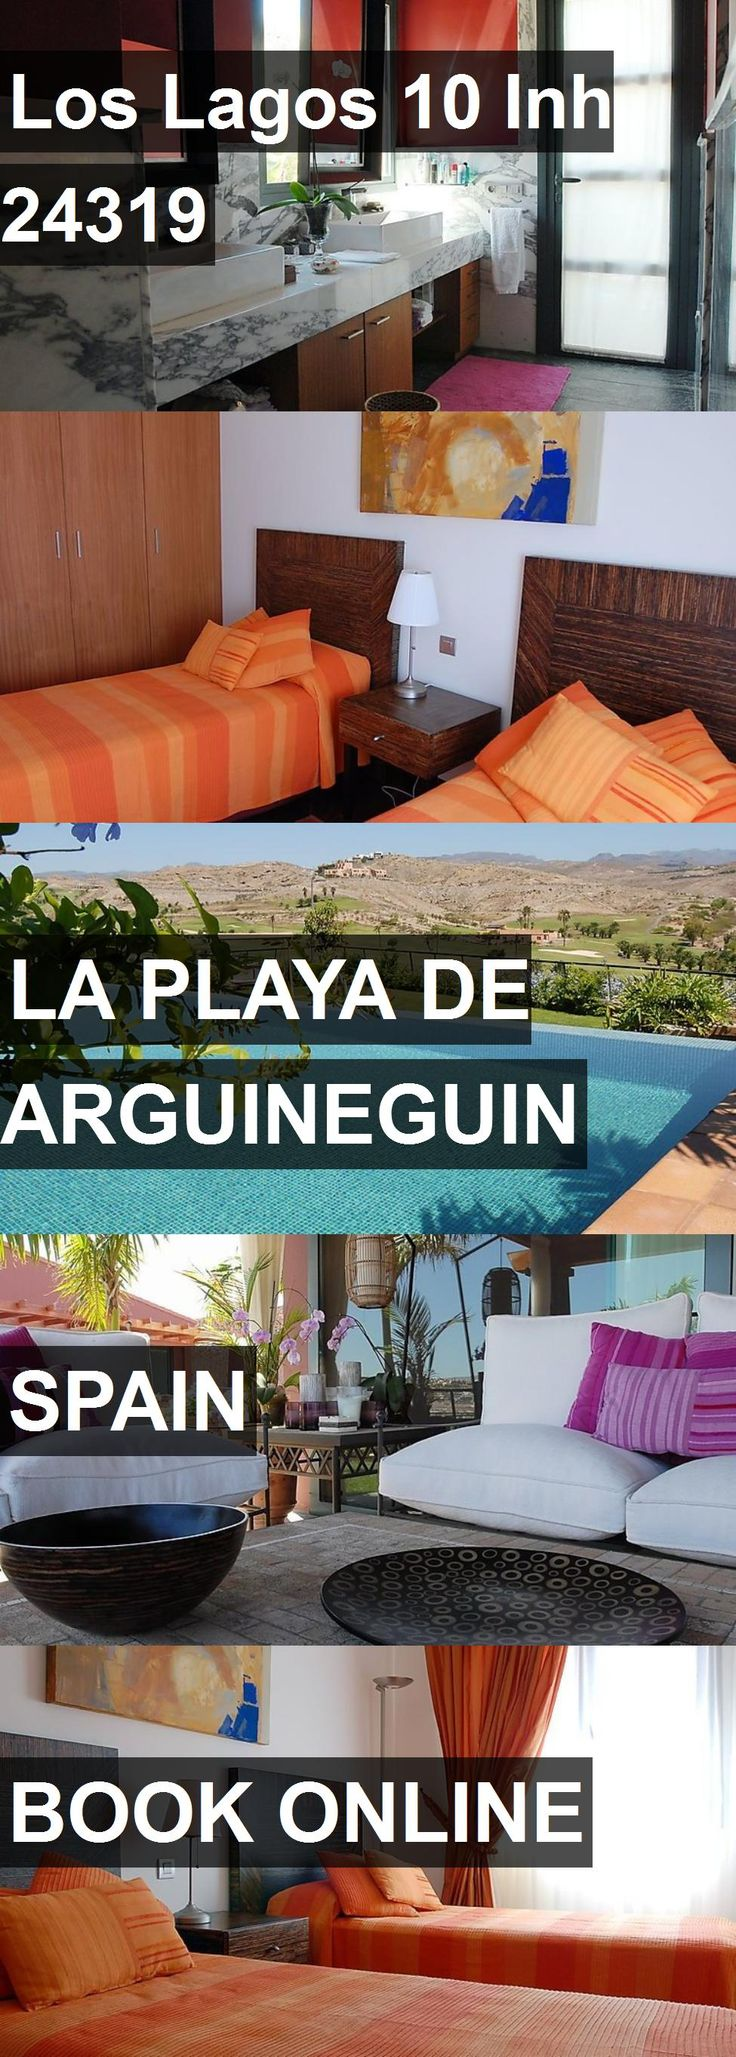 Hotel Los Lagos 10 Inh 24319 in La Playa de Arguineguin, Spain. For more information, photos, reviews and best prices please follow the link. #Spain #LaPlayadeArguineguin #travel #vacation #hotel